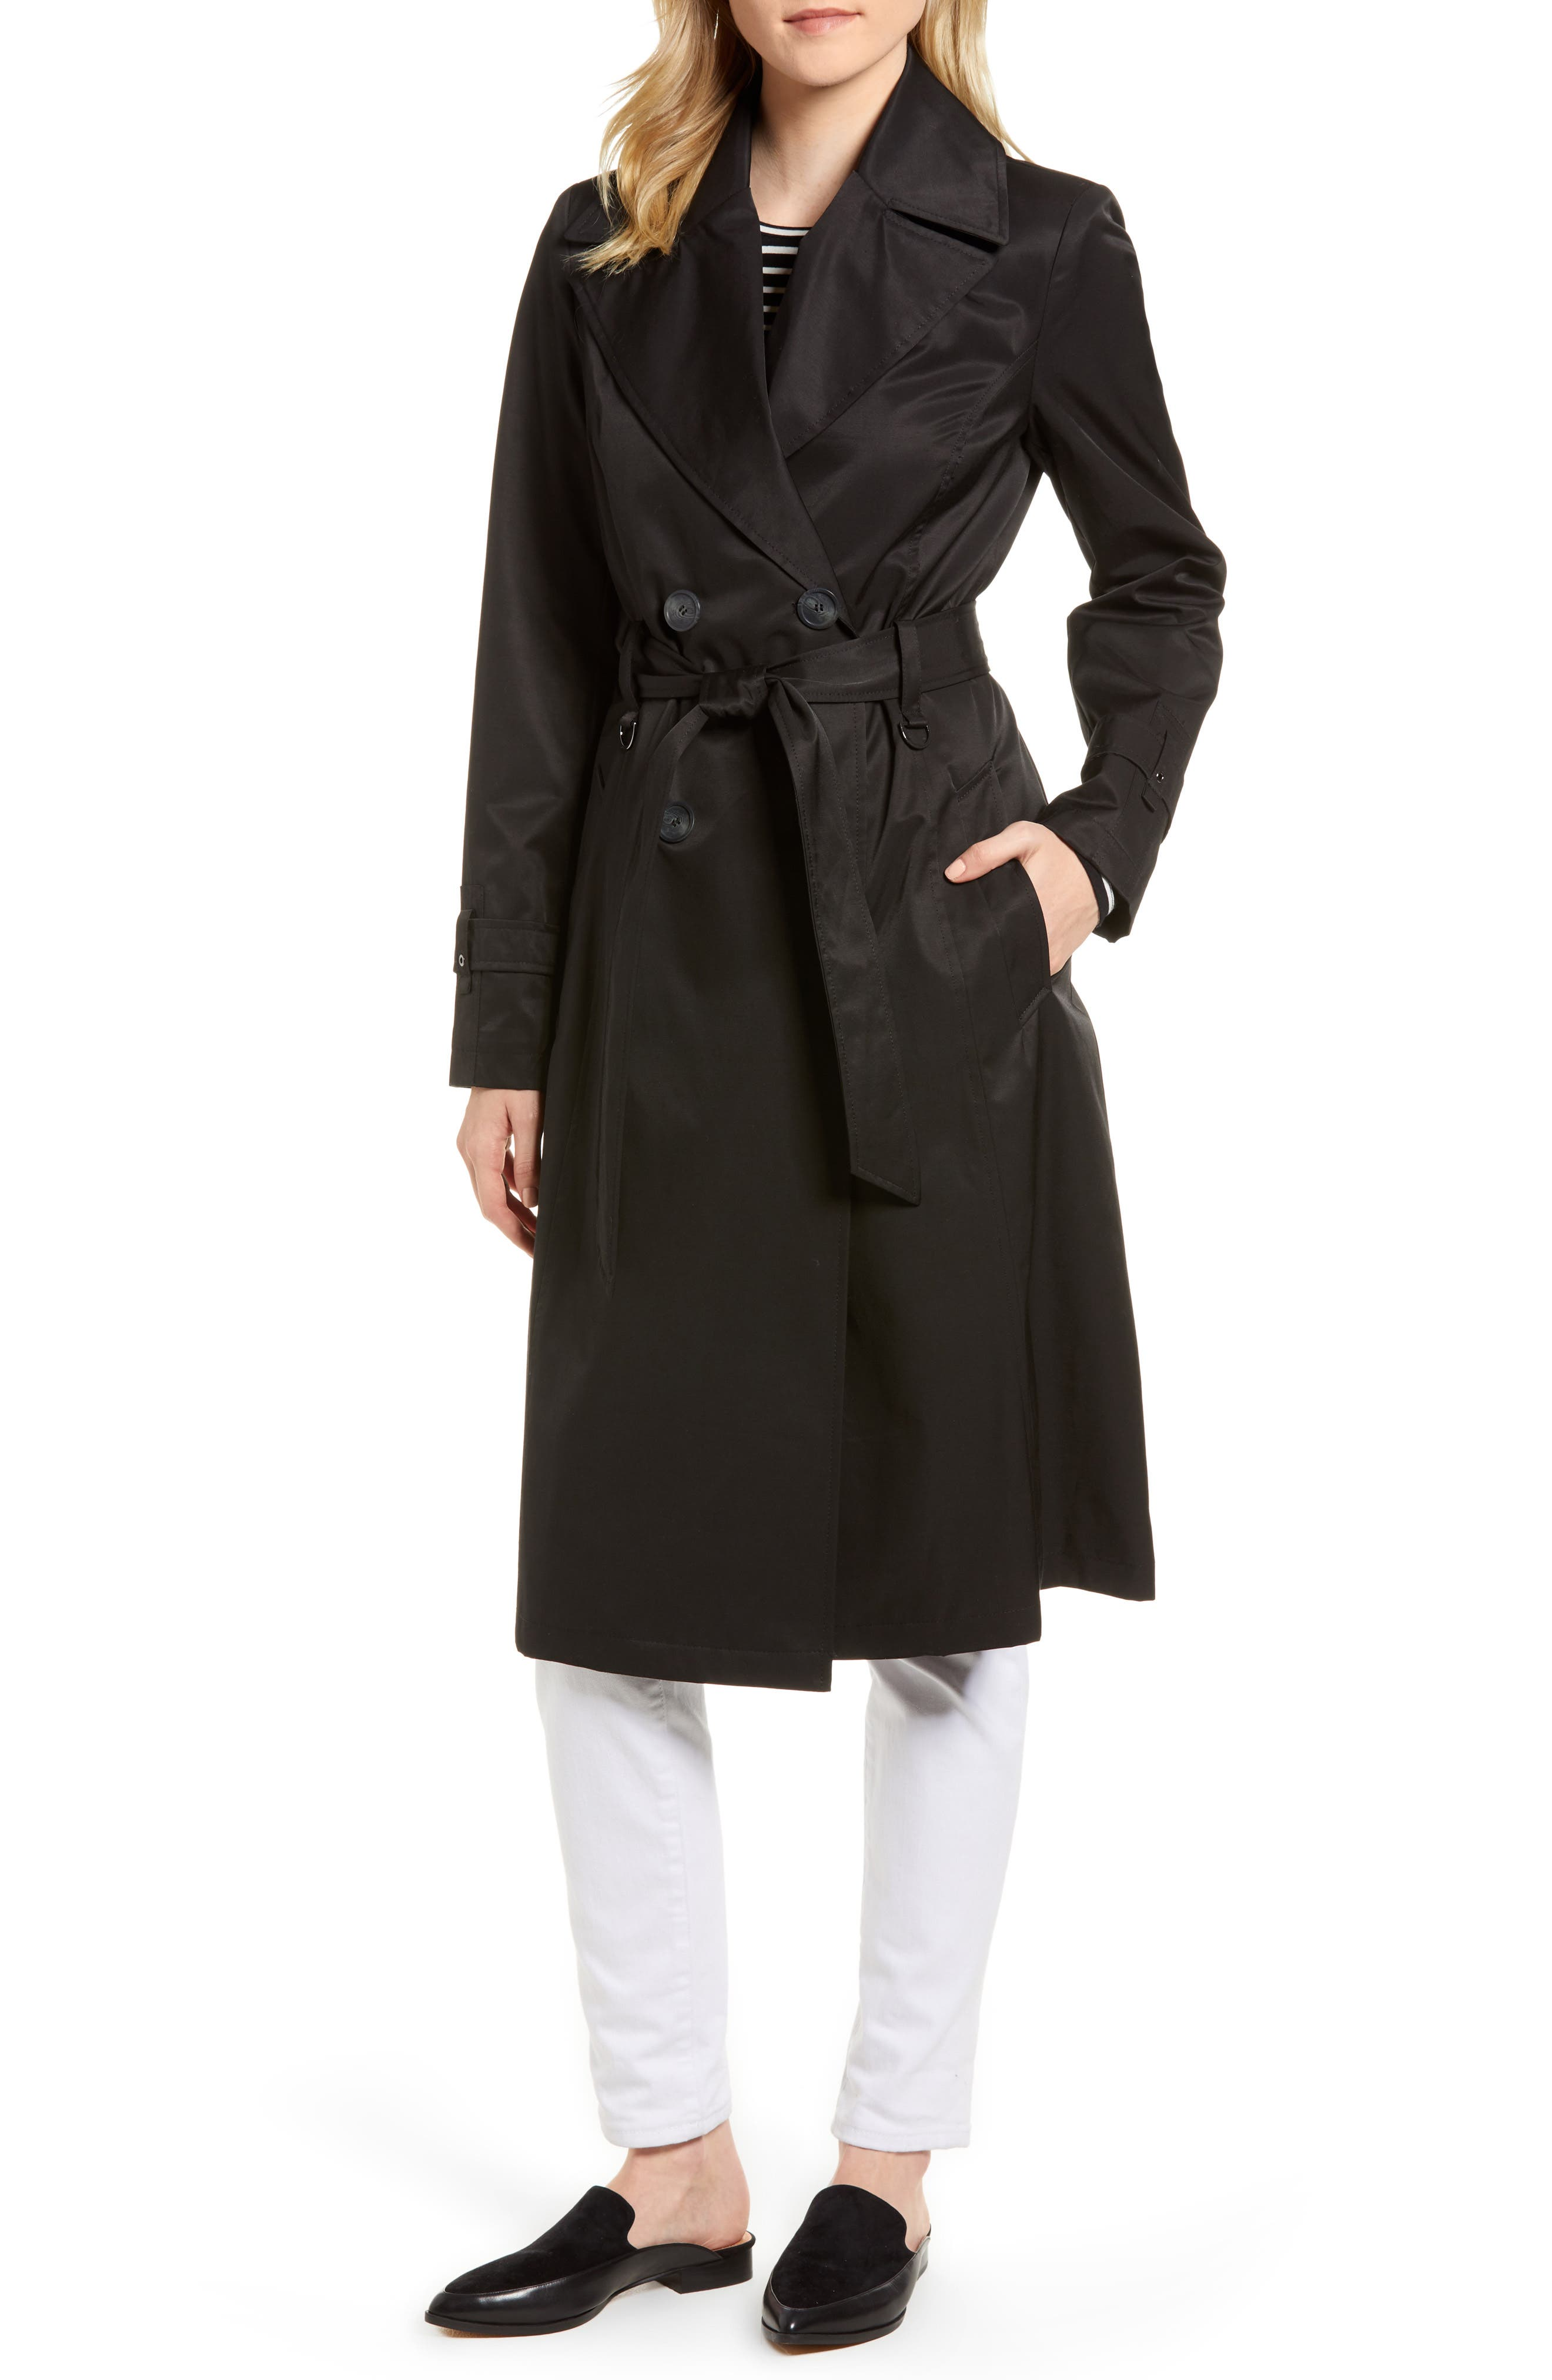 Via Spiga Womens Water-Resistant Double-Breasted Trench Coat